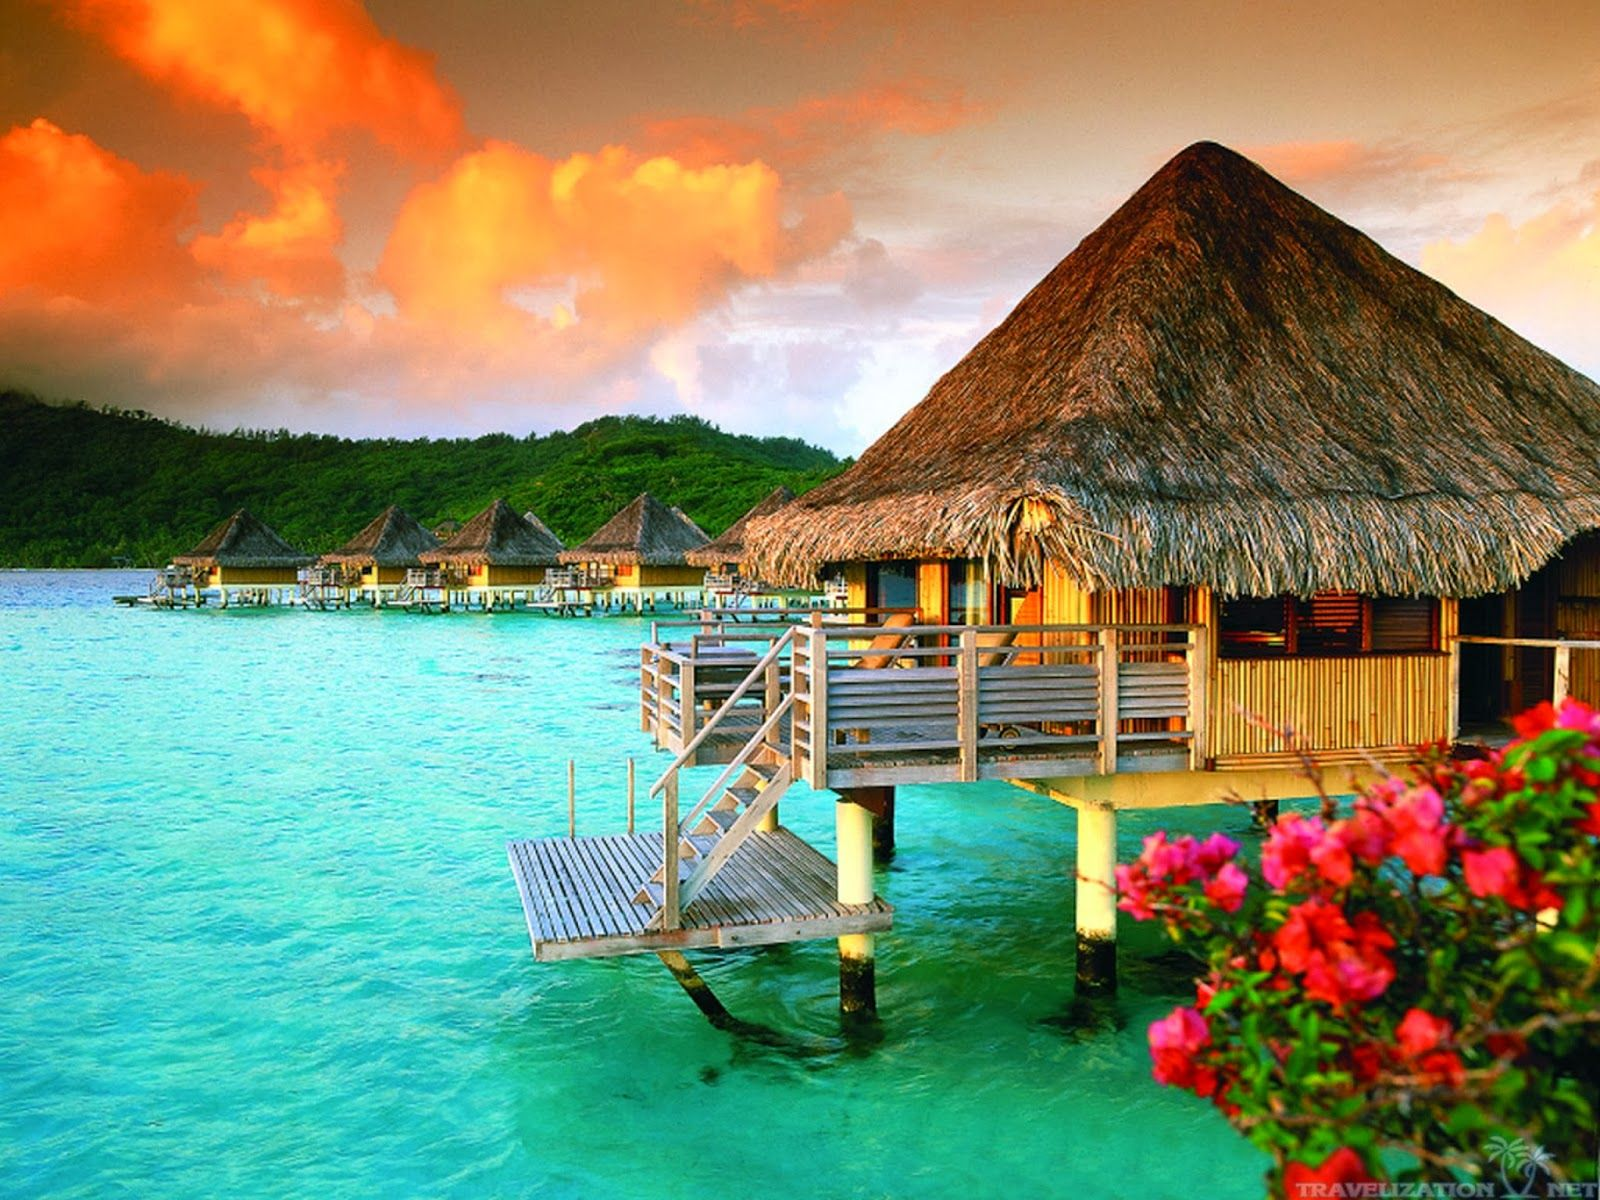 Beauty of Nature Tahiti Islands Resort is a world best